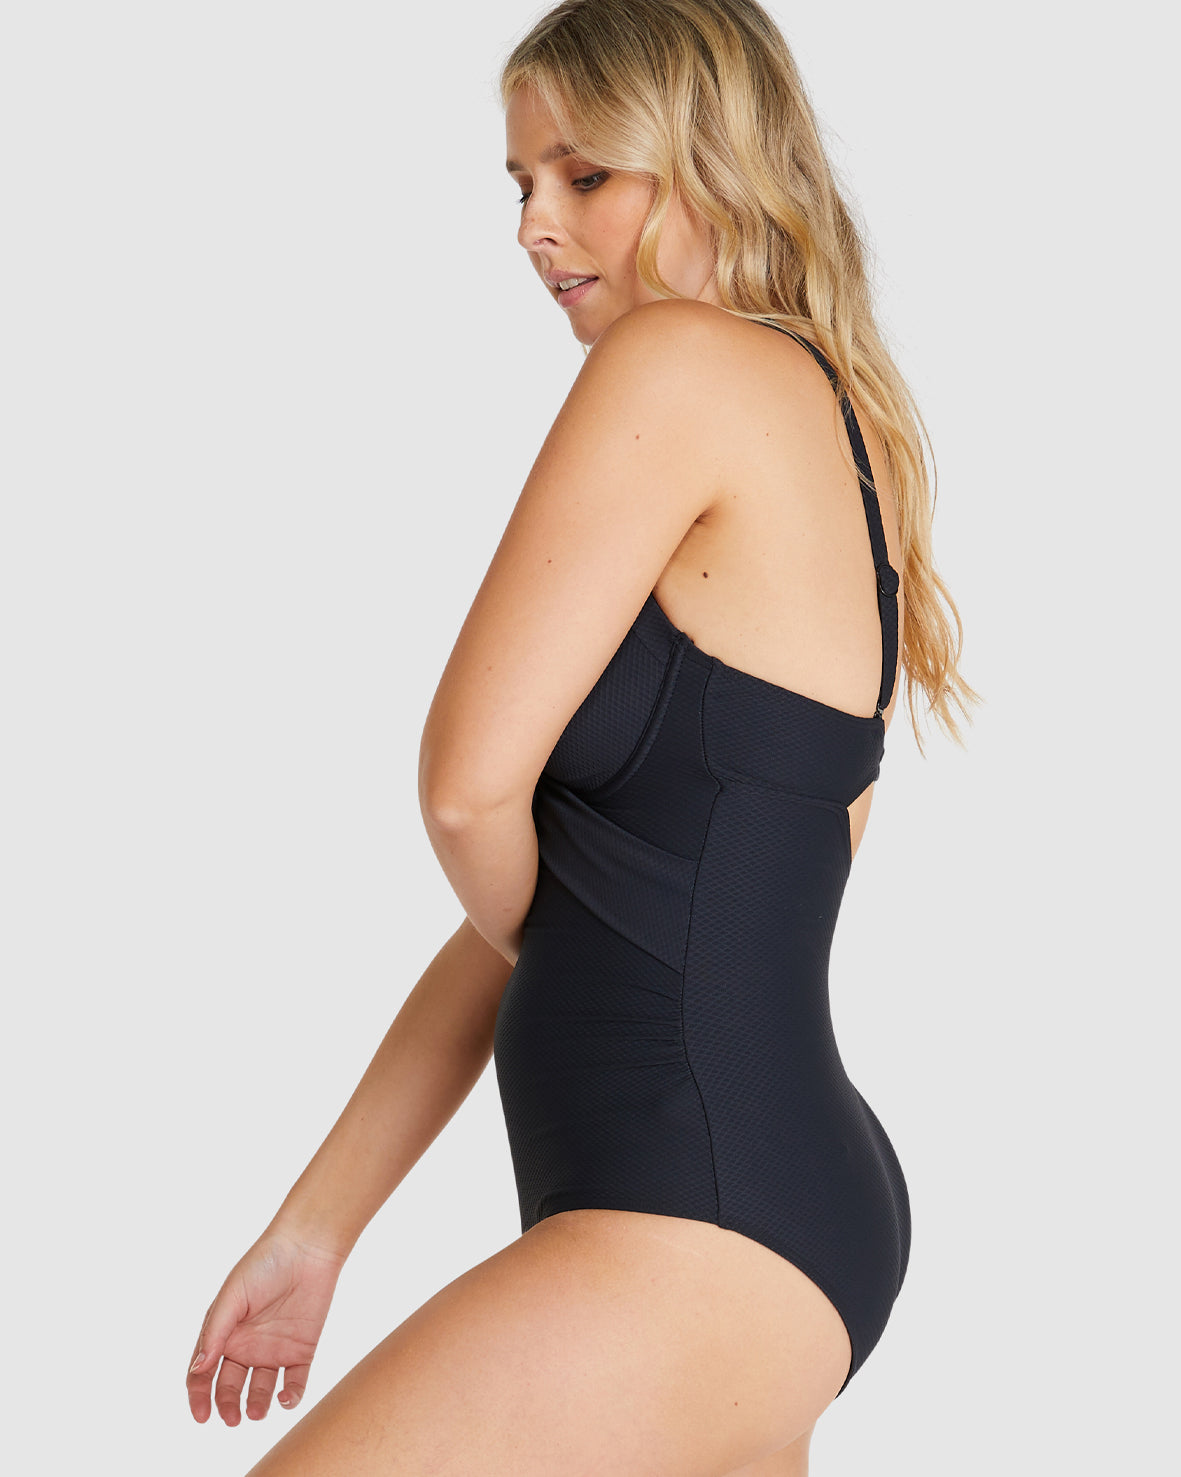 ROCOCCO MOULDED D-DD ONE PIECE